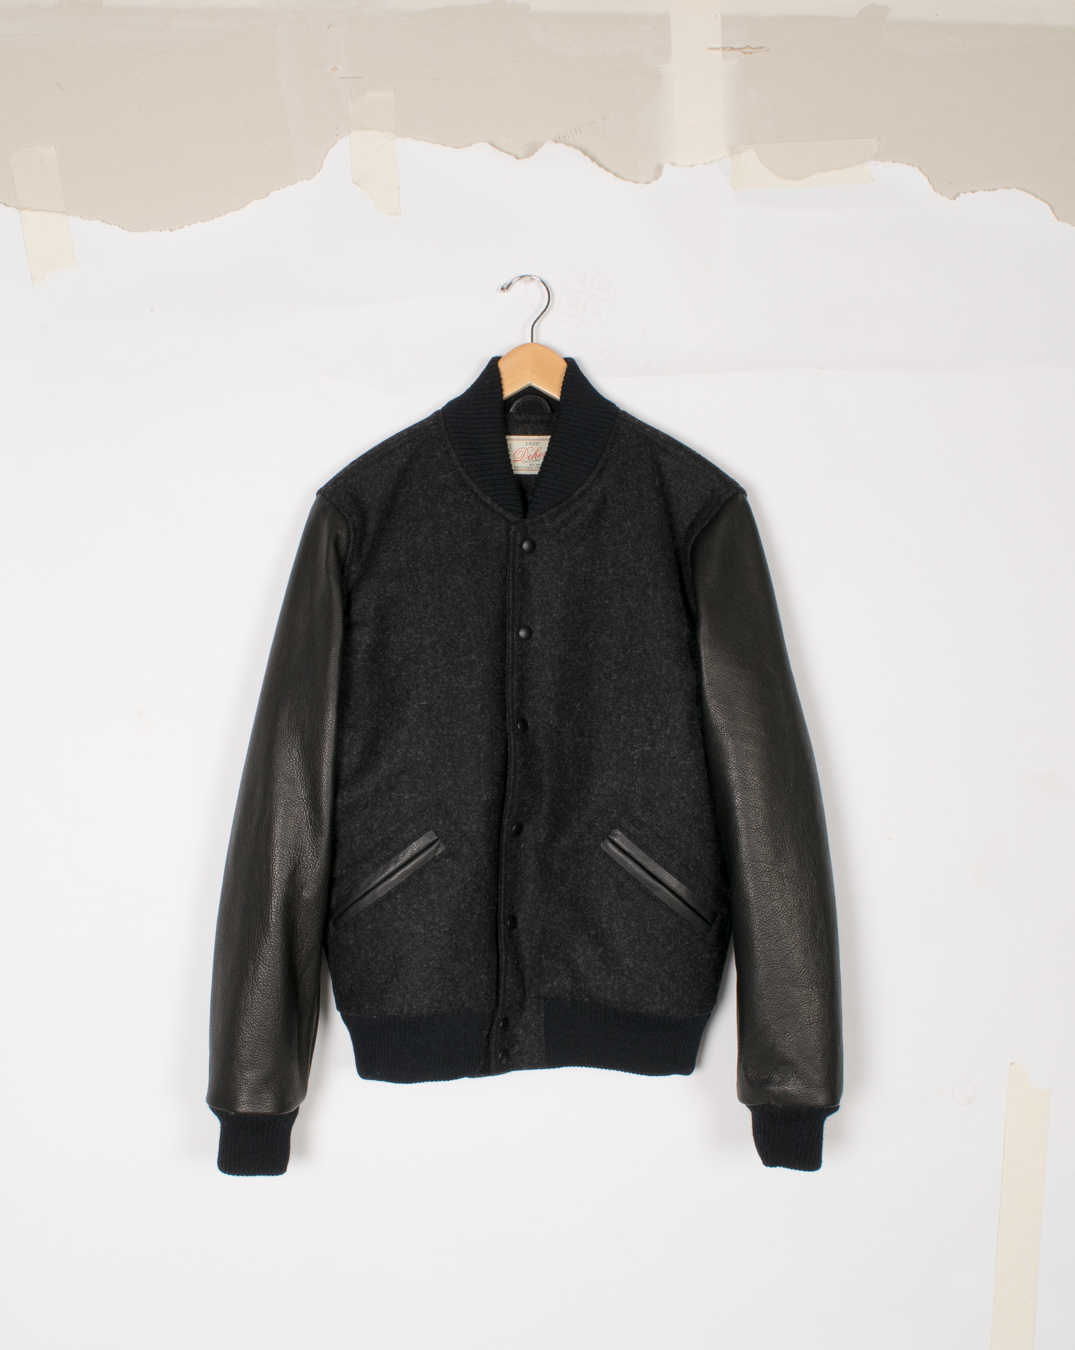 Varsity Jacket - Dark Charcoal/Black - $575